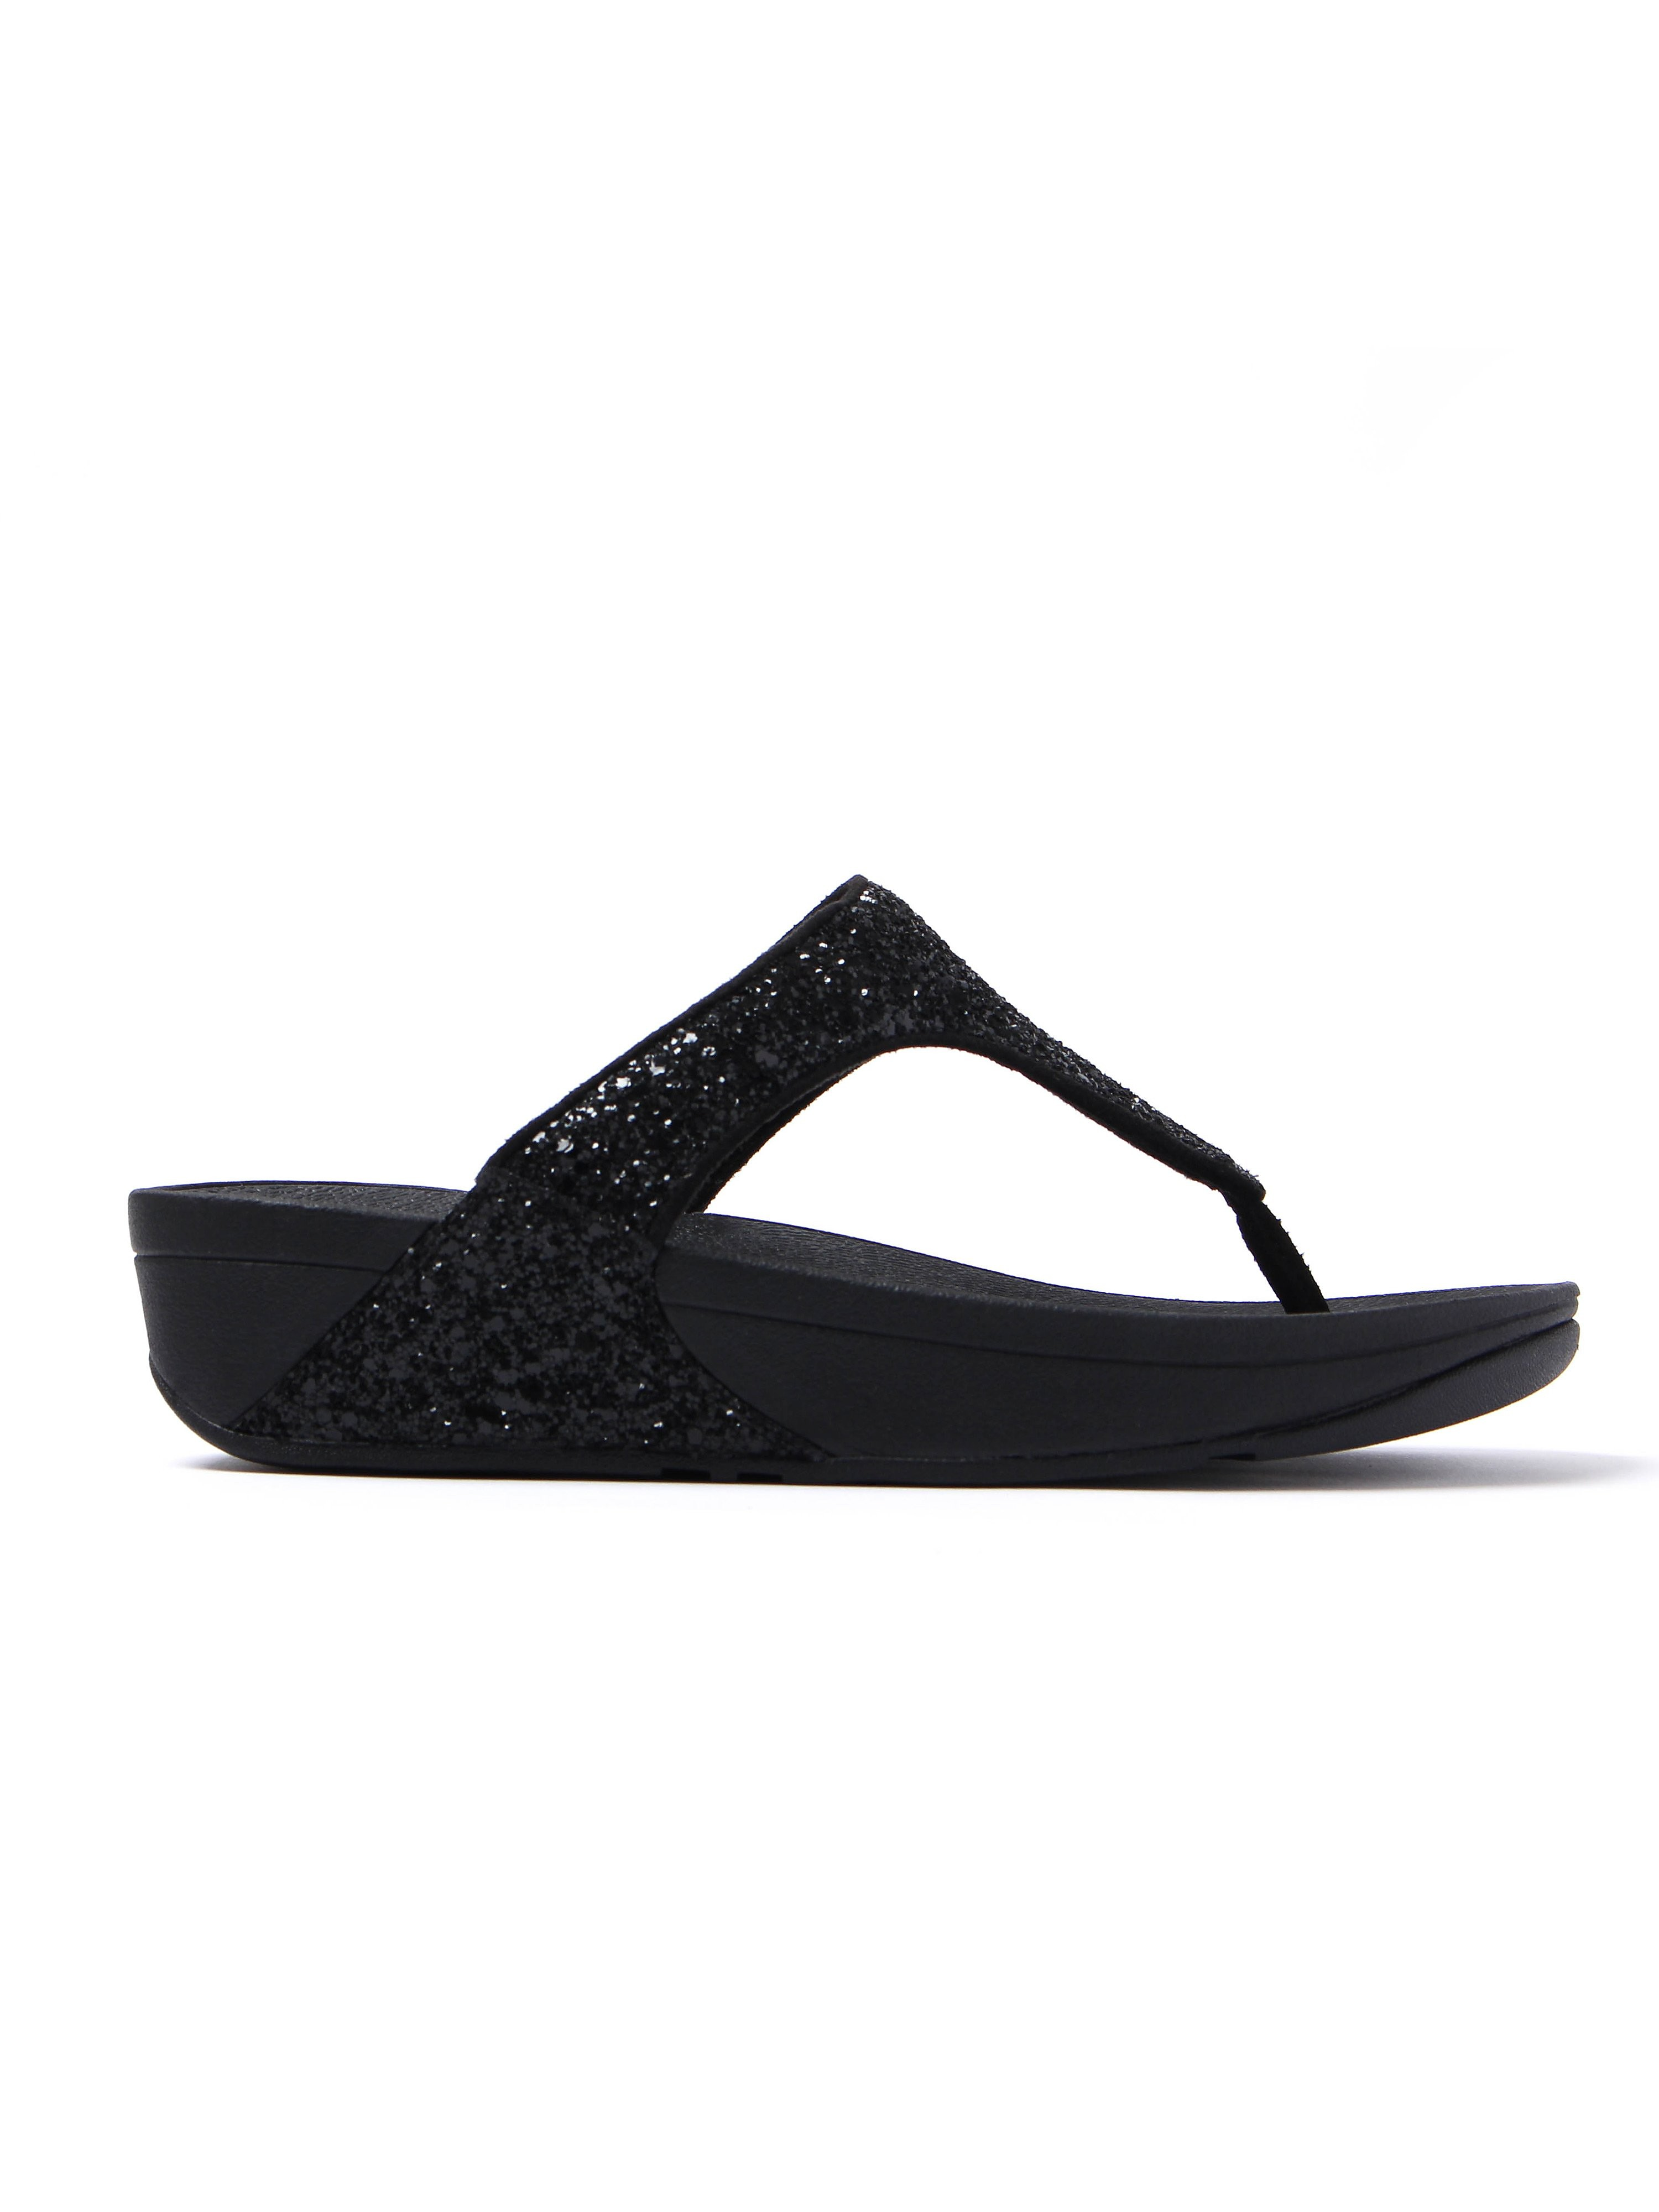 FitFlop Womens Glitterball™ Toe-Post Sandals - Black